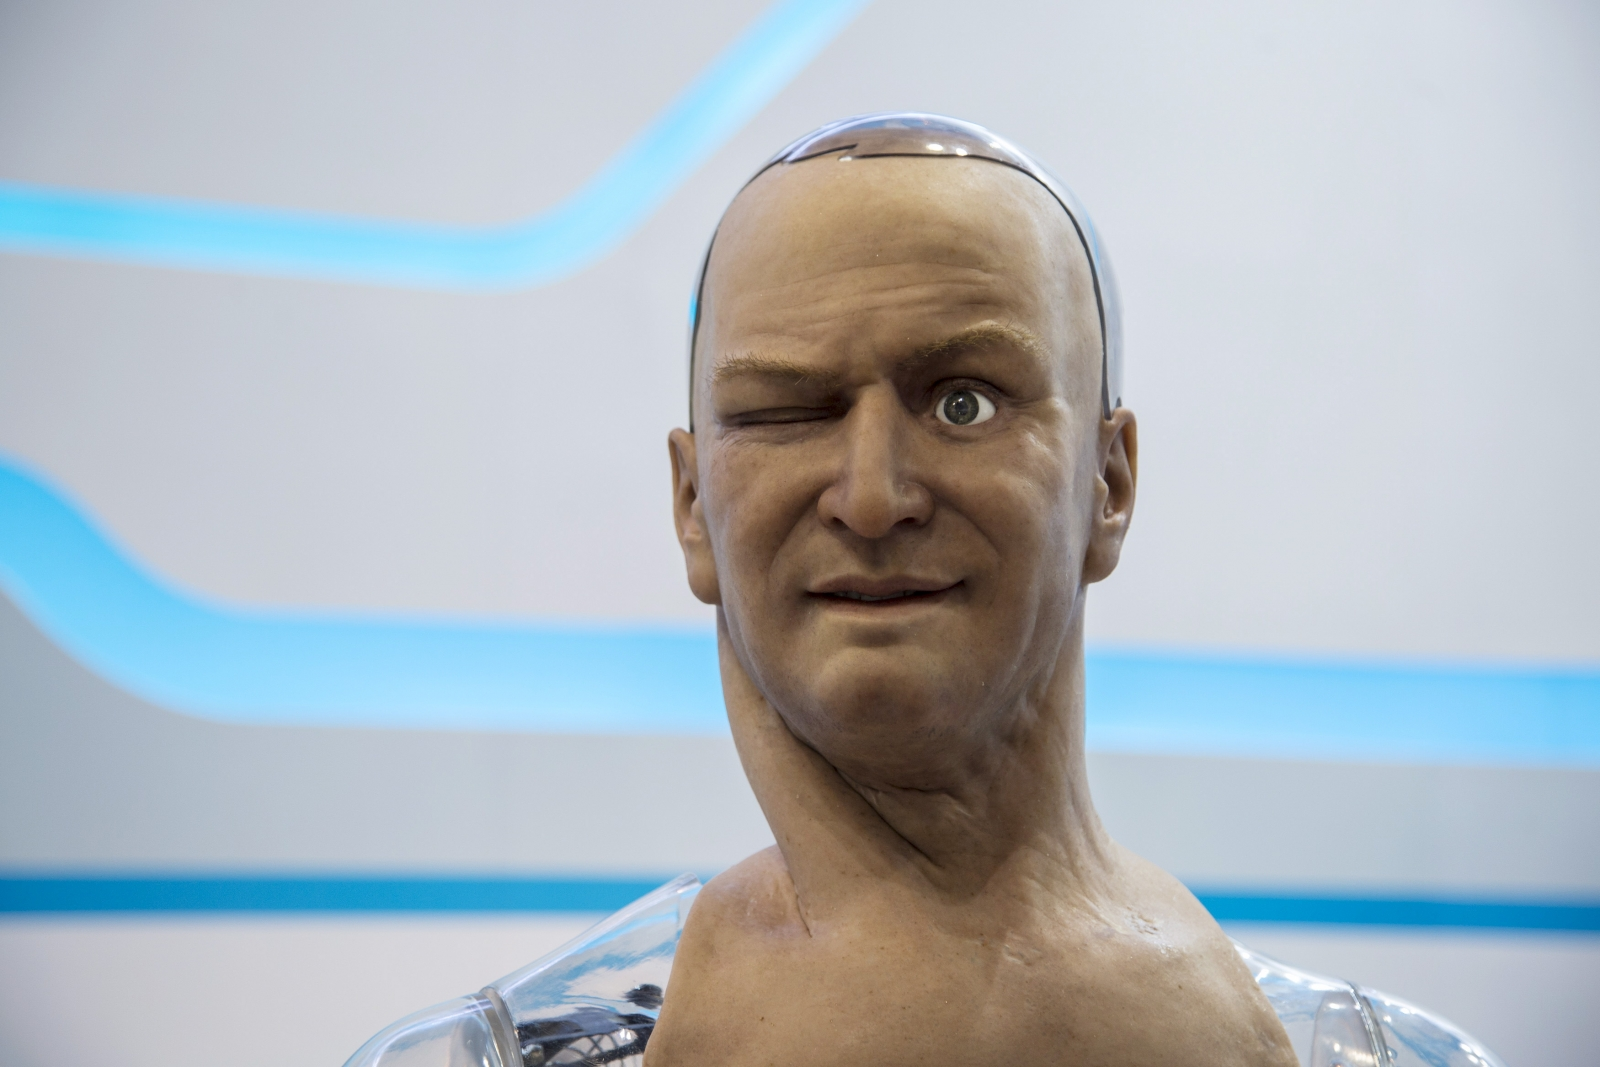 Han the humanoid robot